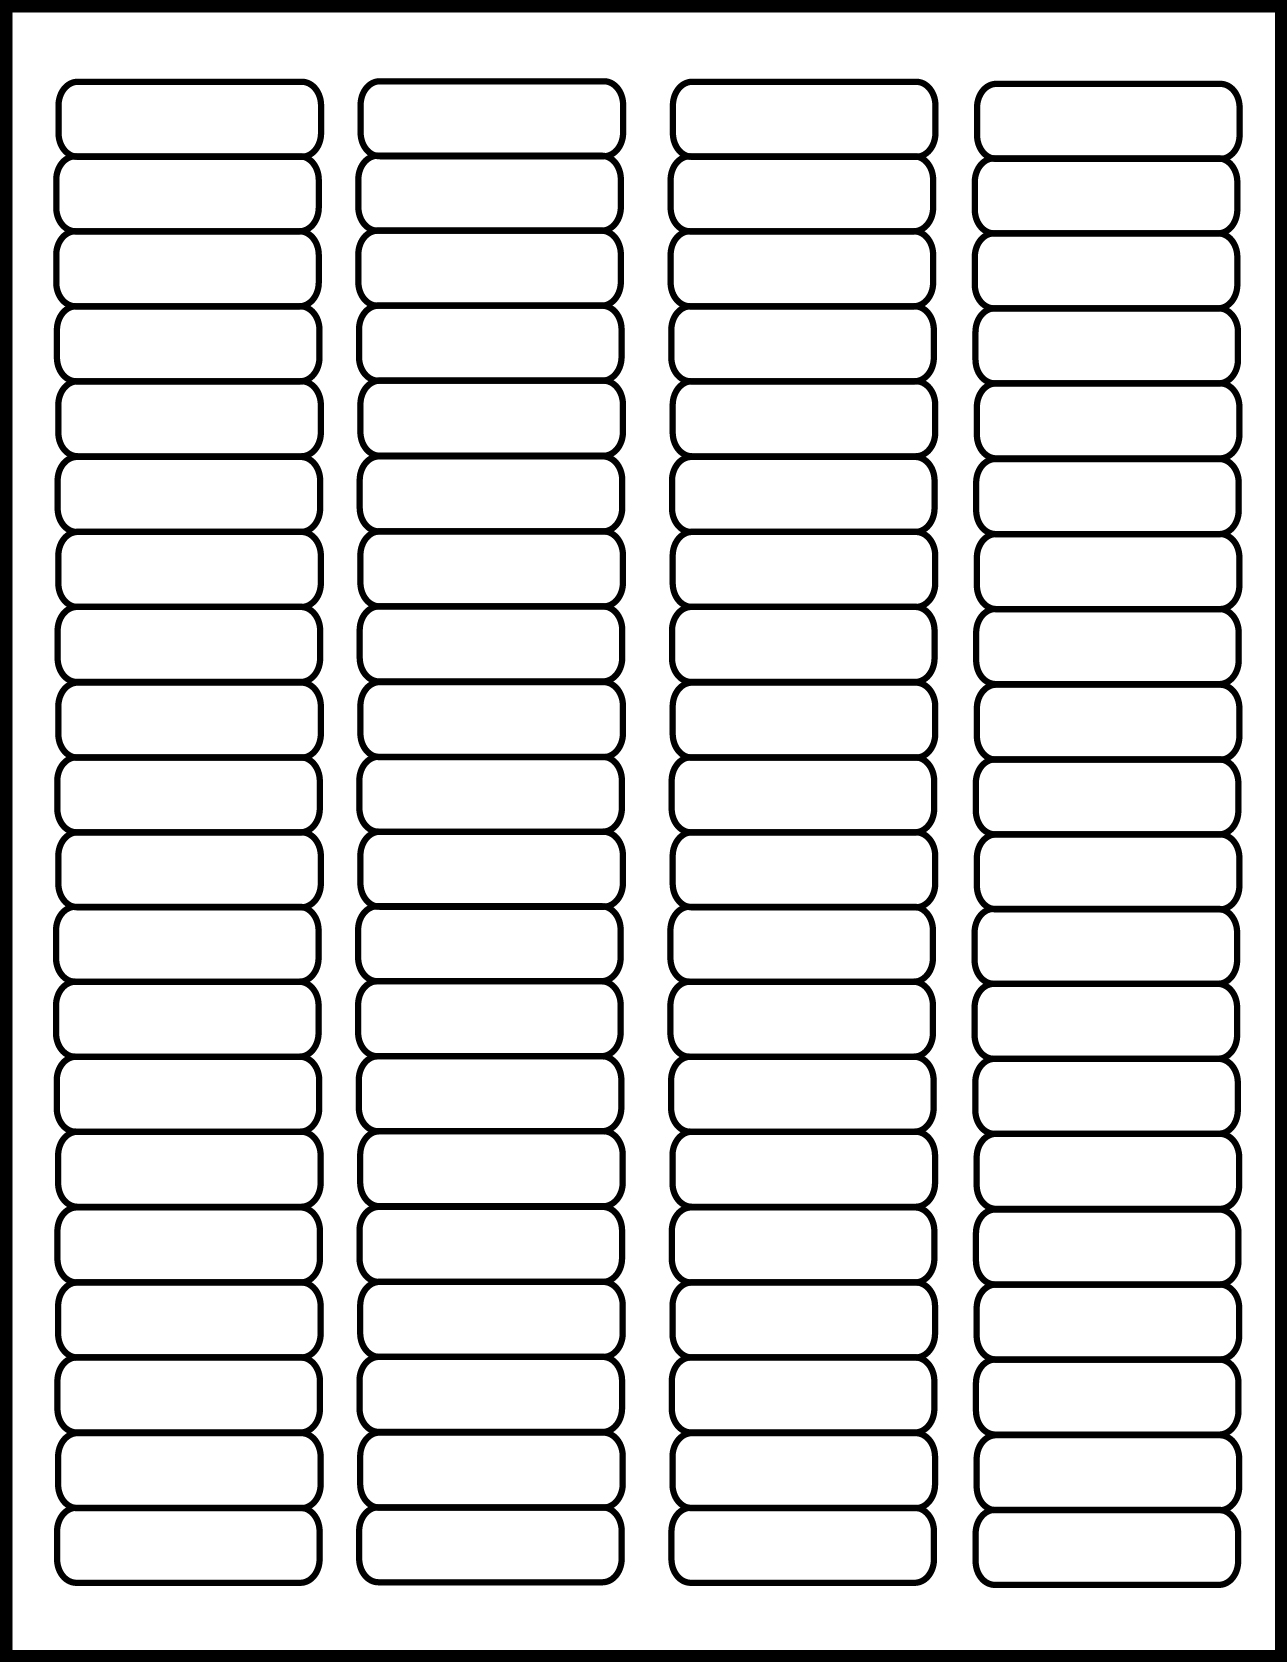 graphic regarding Printable Labels Sheets identify Very clear Matte Laser Printable Labels 1 3/4 x 1/2 inch 50 sheets #1705CM